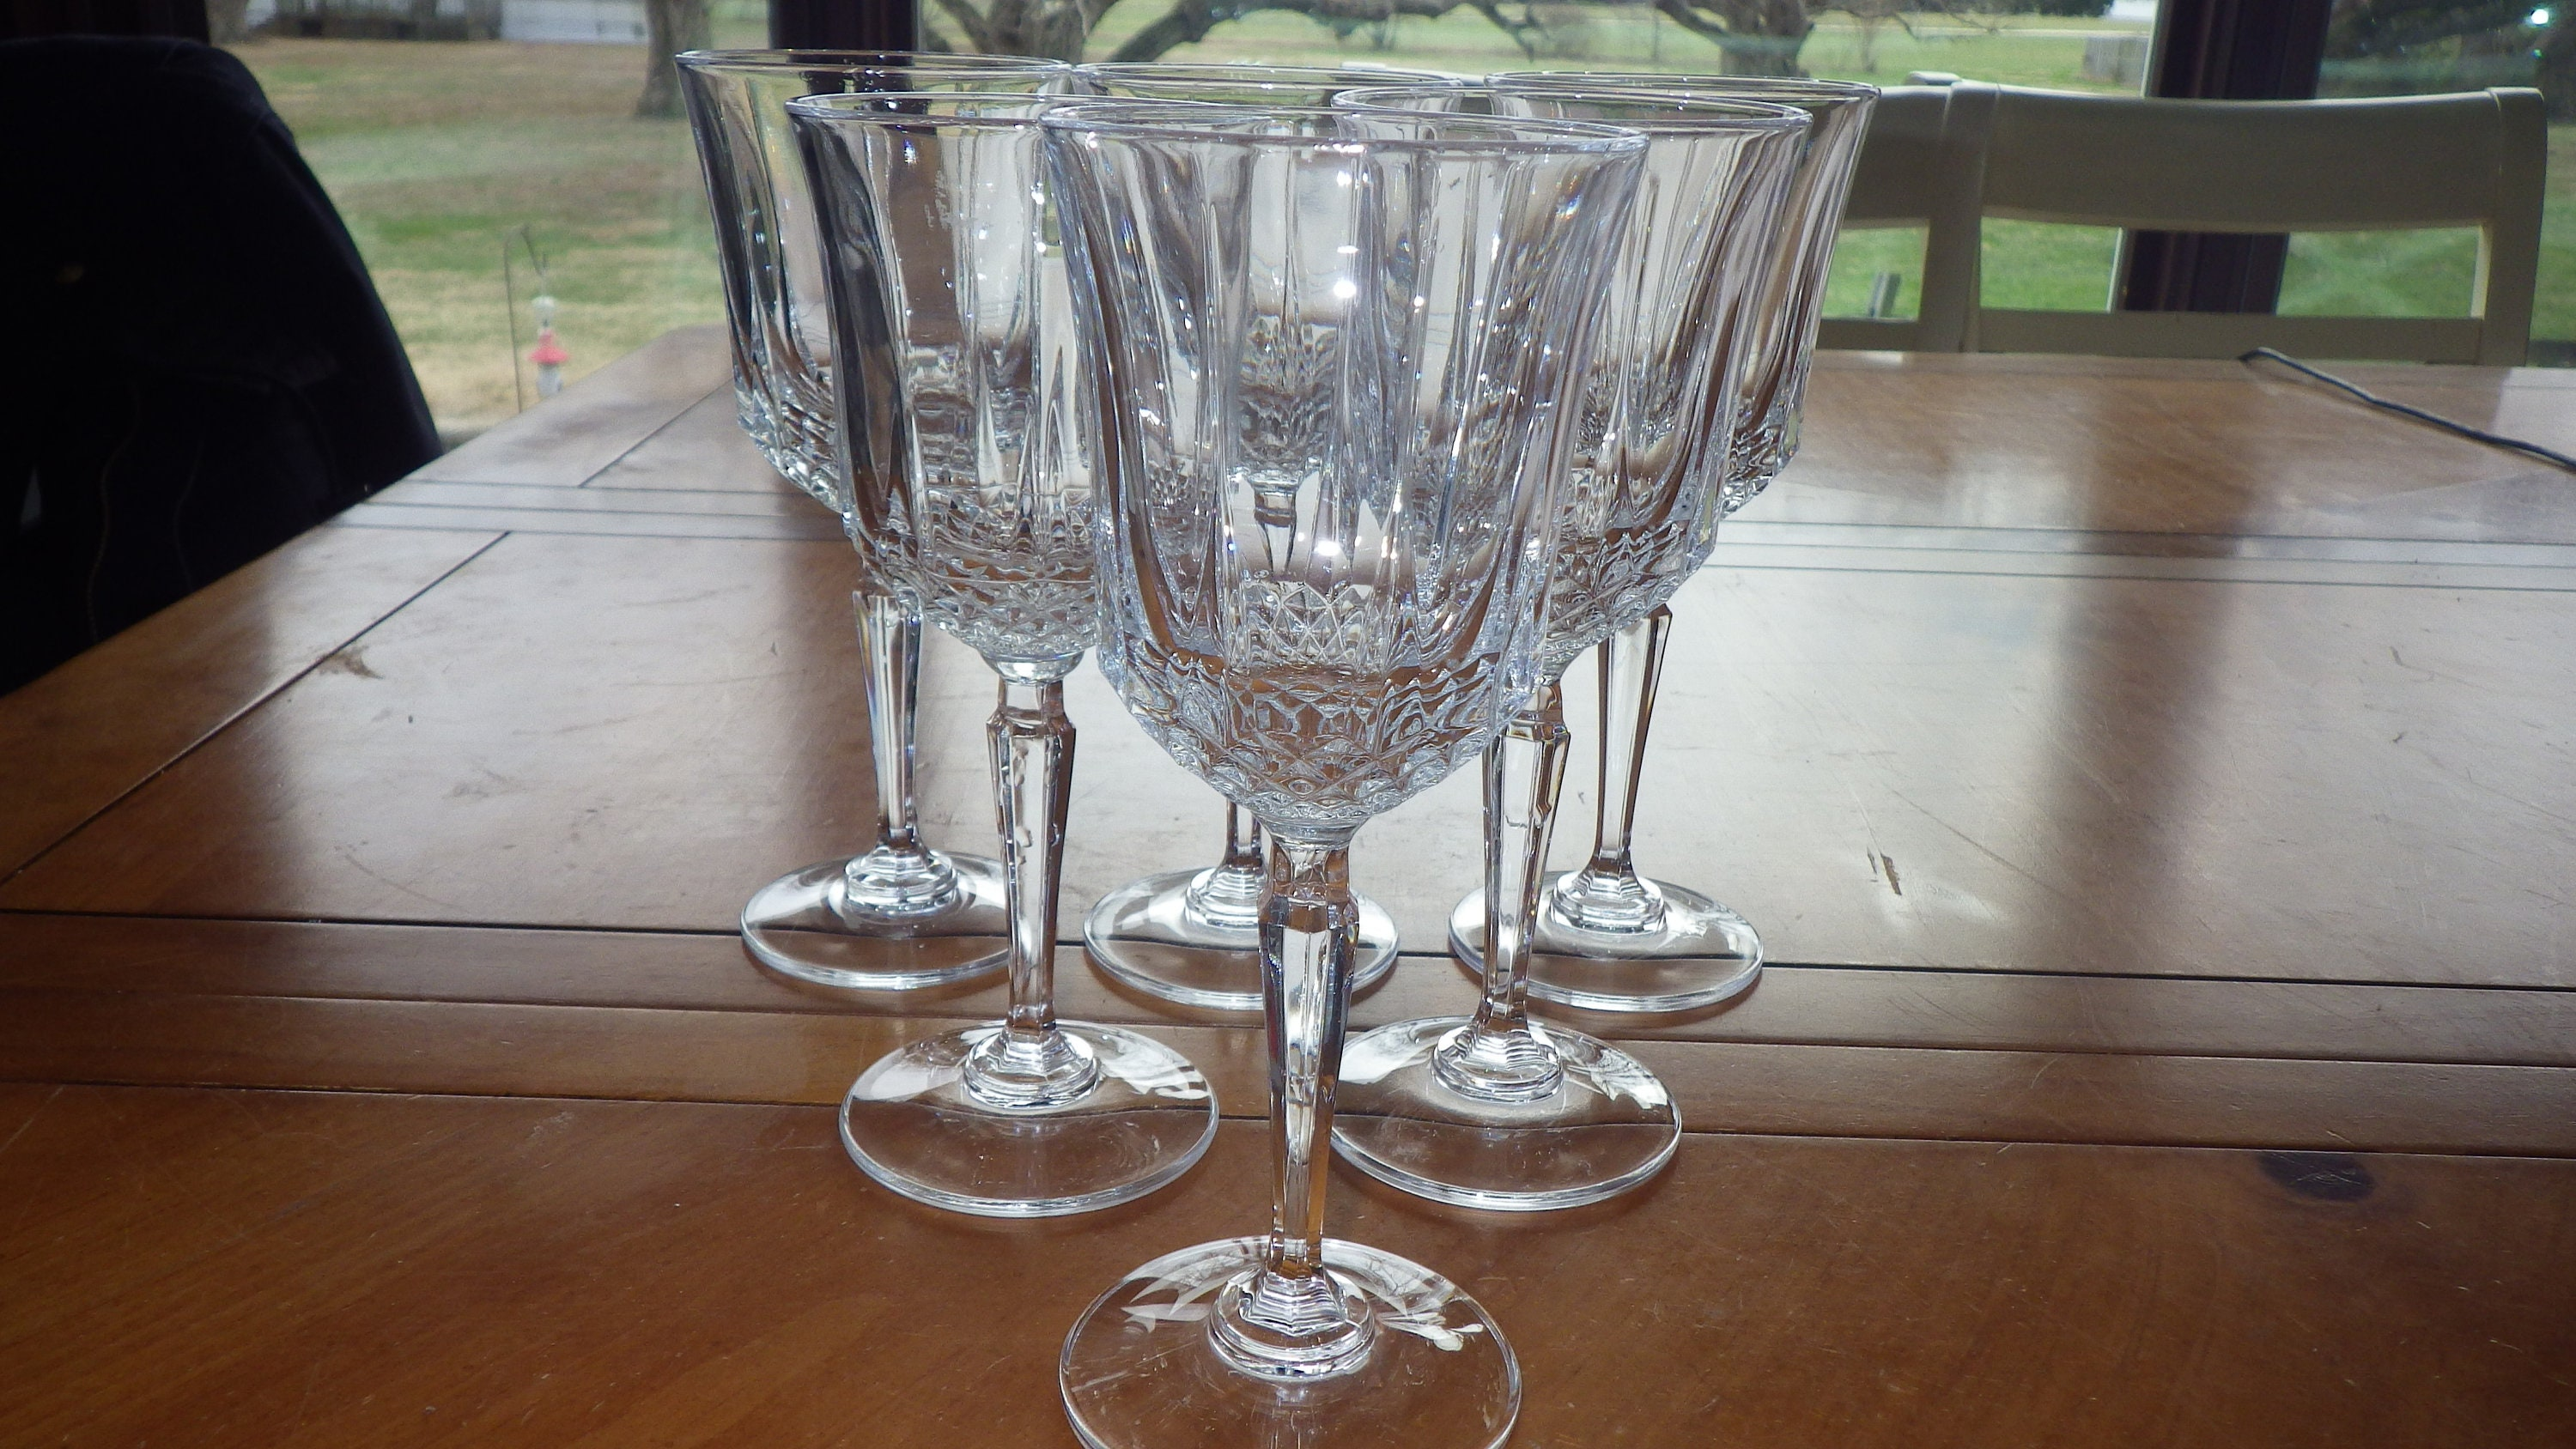 Cristal Darques France.Cut Crystal Wine Glasses Anet By Cristal D Arques France 6 Etsy